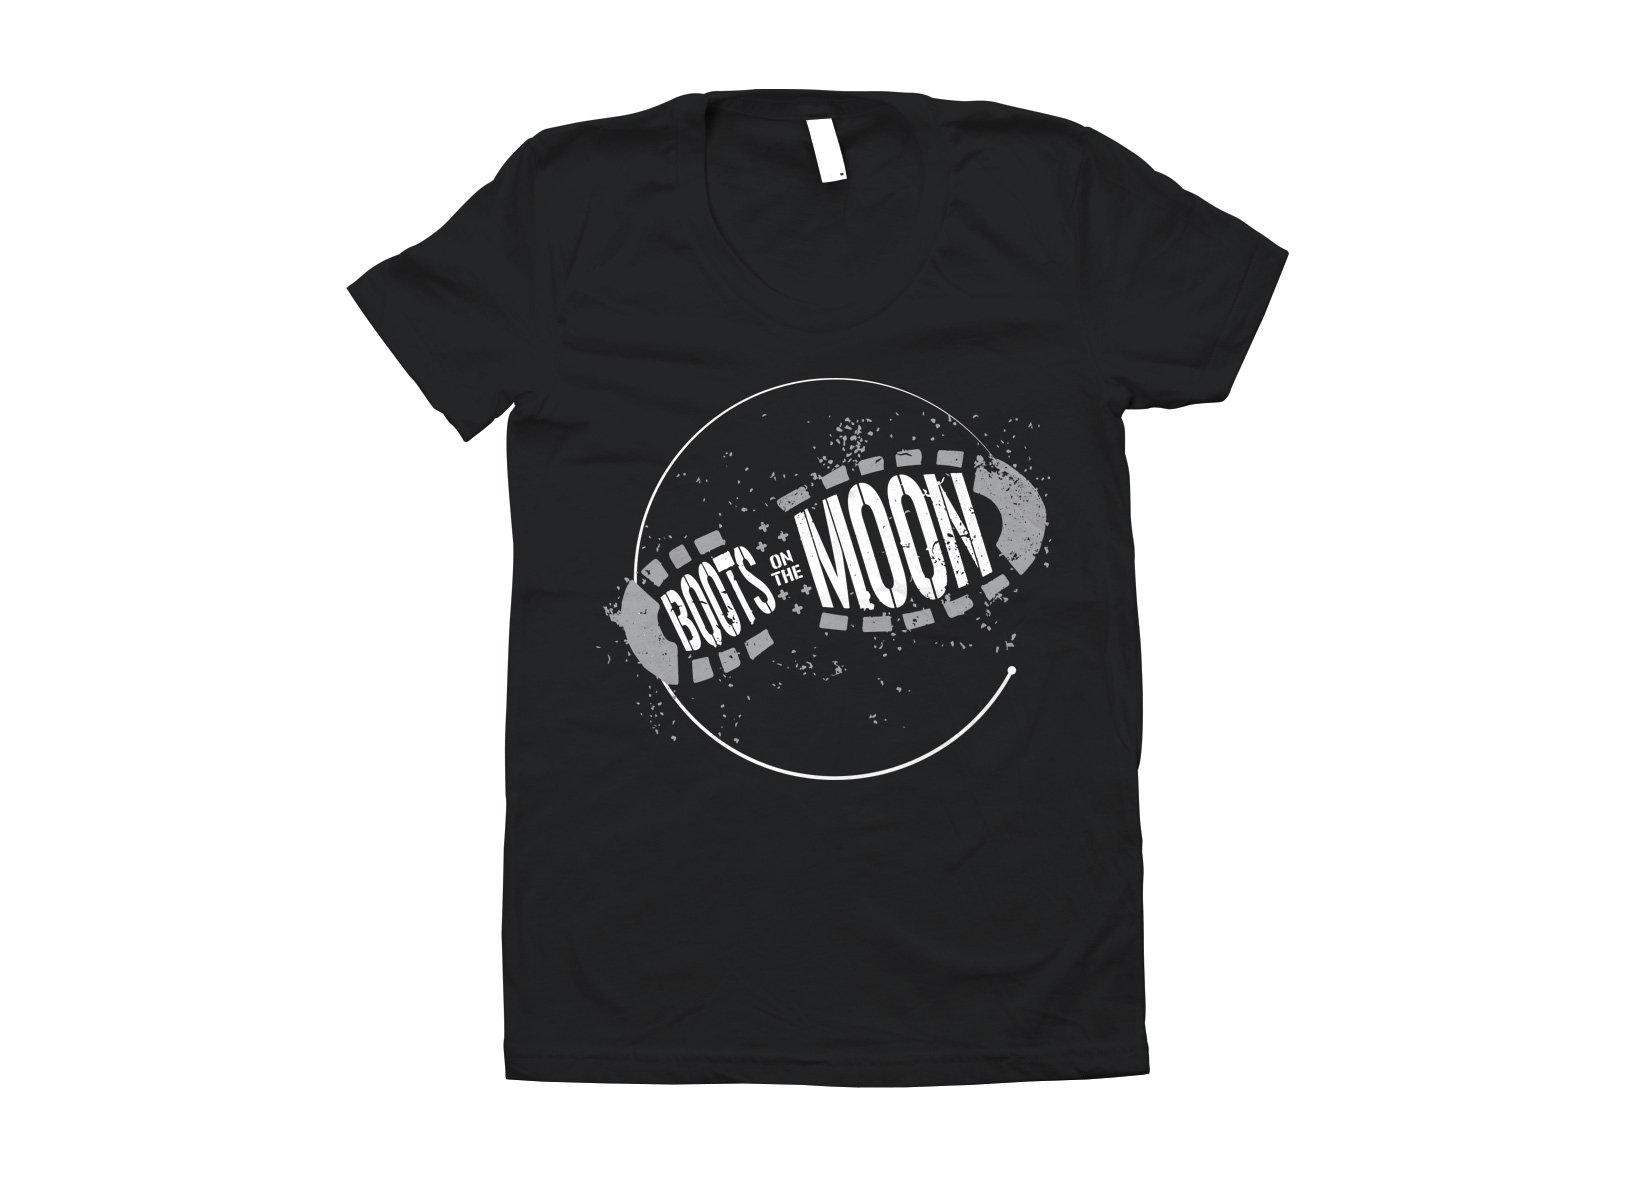 Boots On The Moon on Juniors T-Shirt